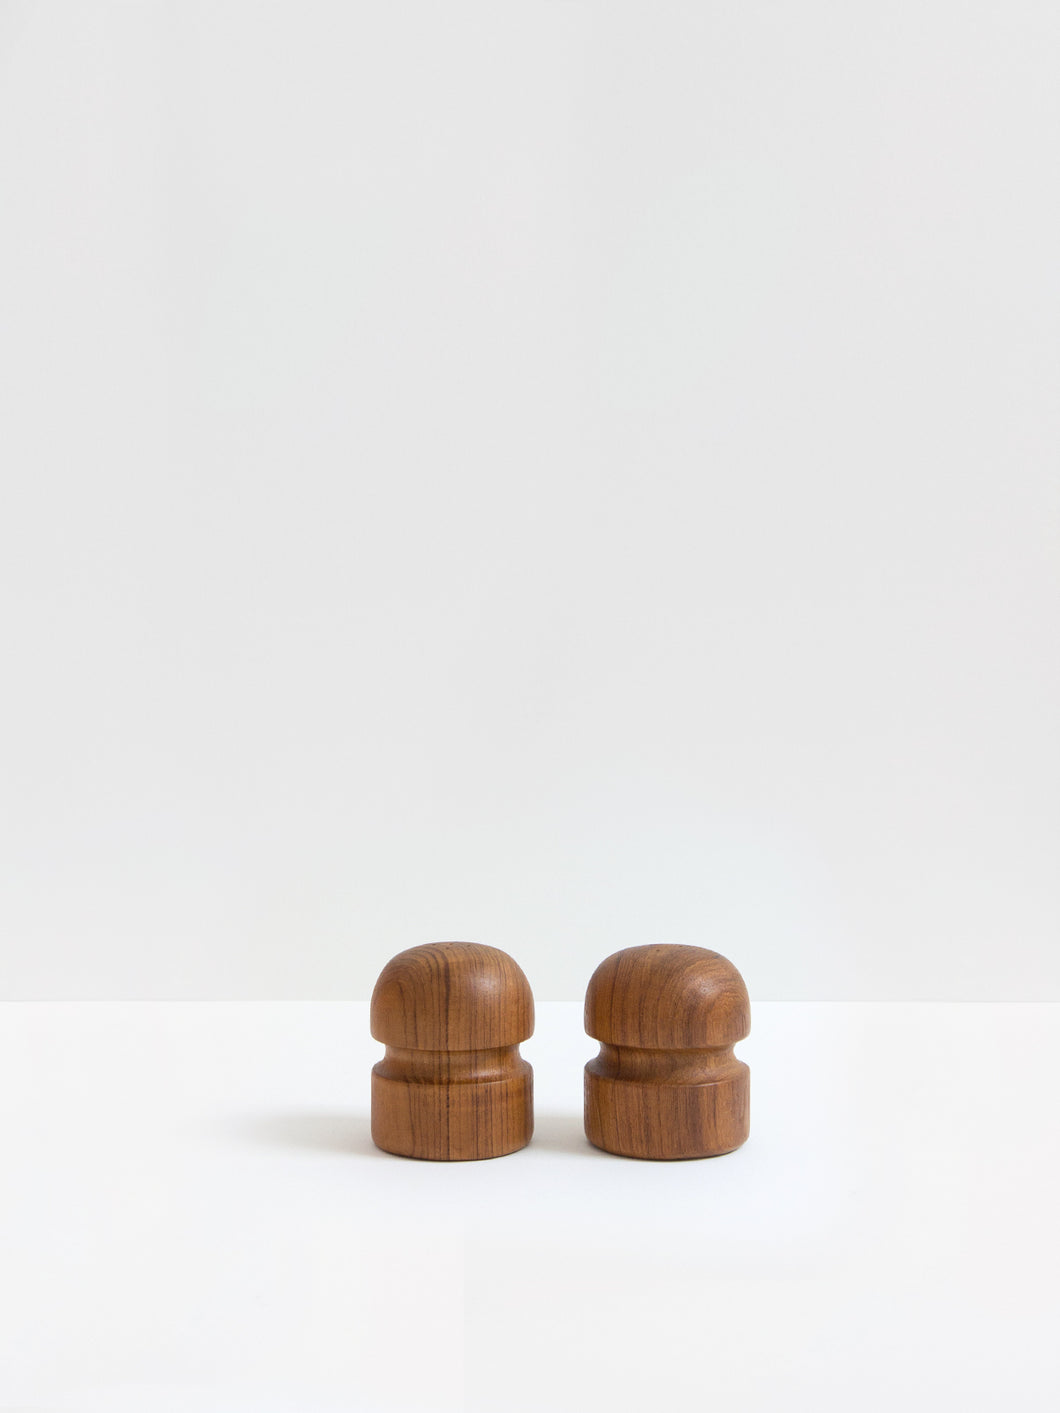 Wood Salt + Pepper Shakers